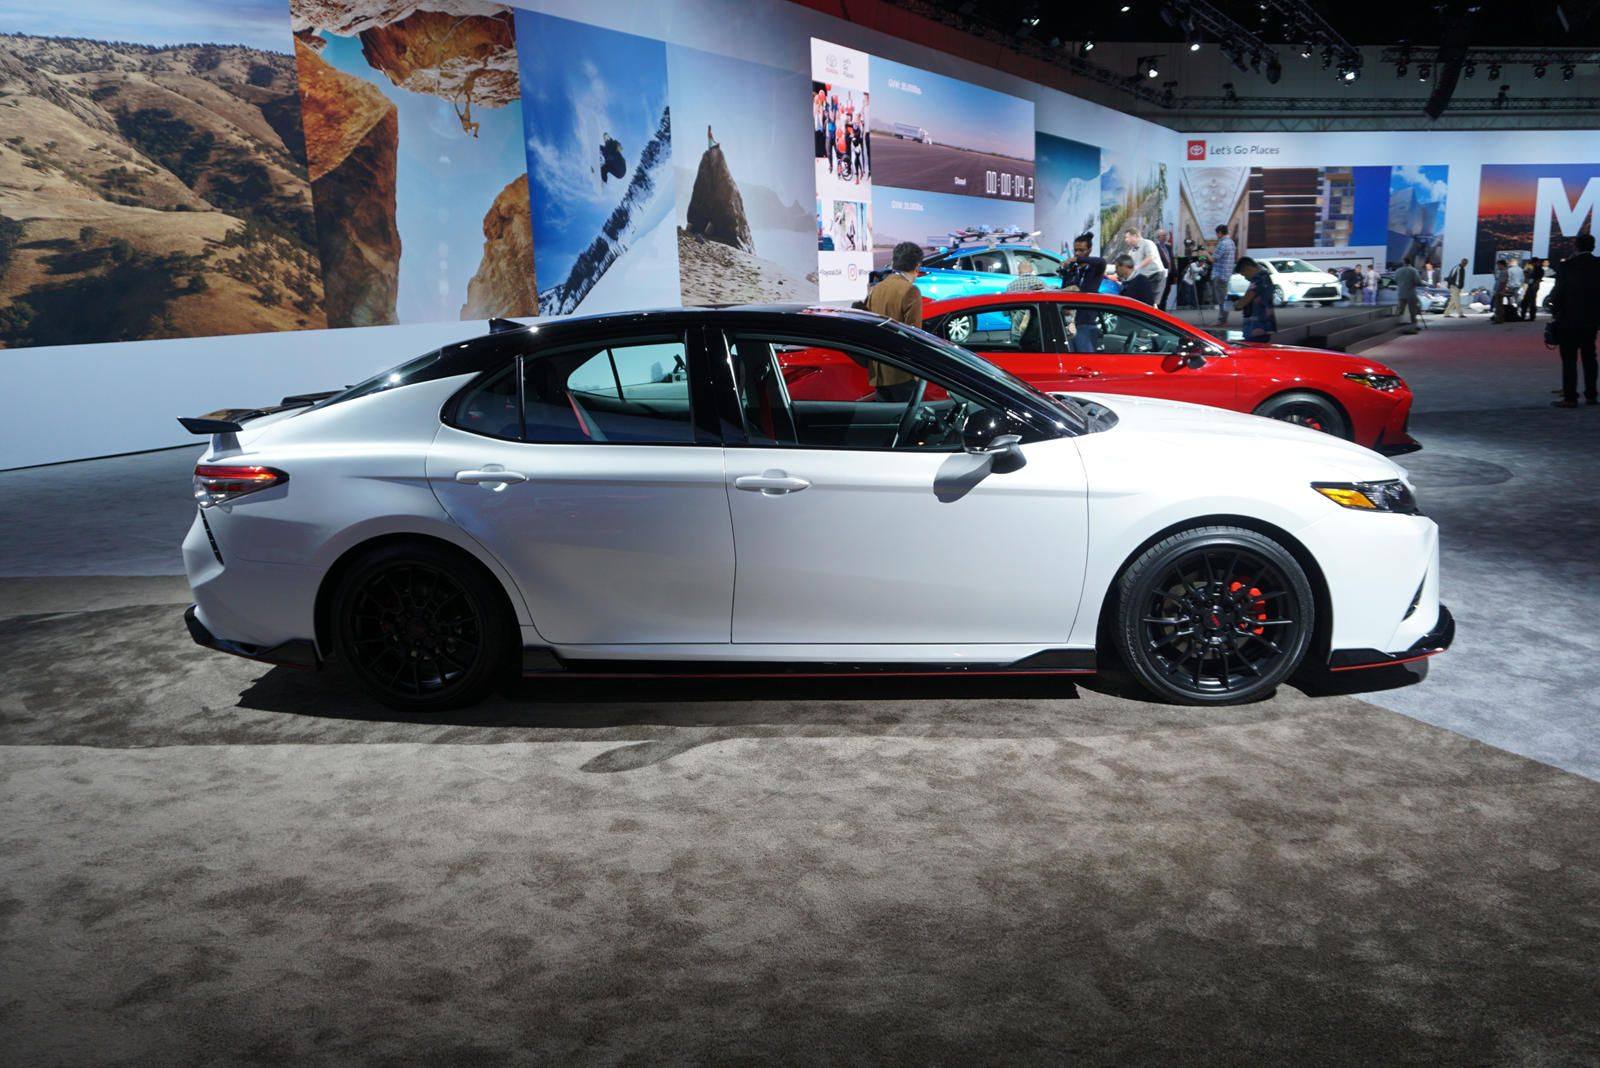 2020 Toyota Camry Trd More Affordable Than You Think Carbuzz Camry Toyota Camry Toyota